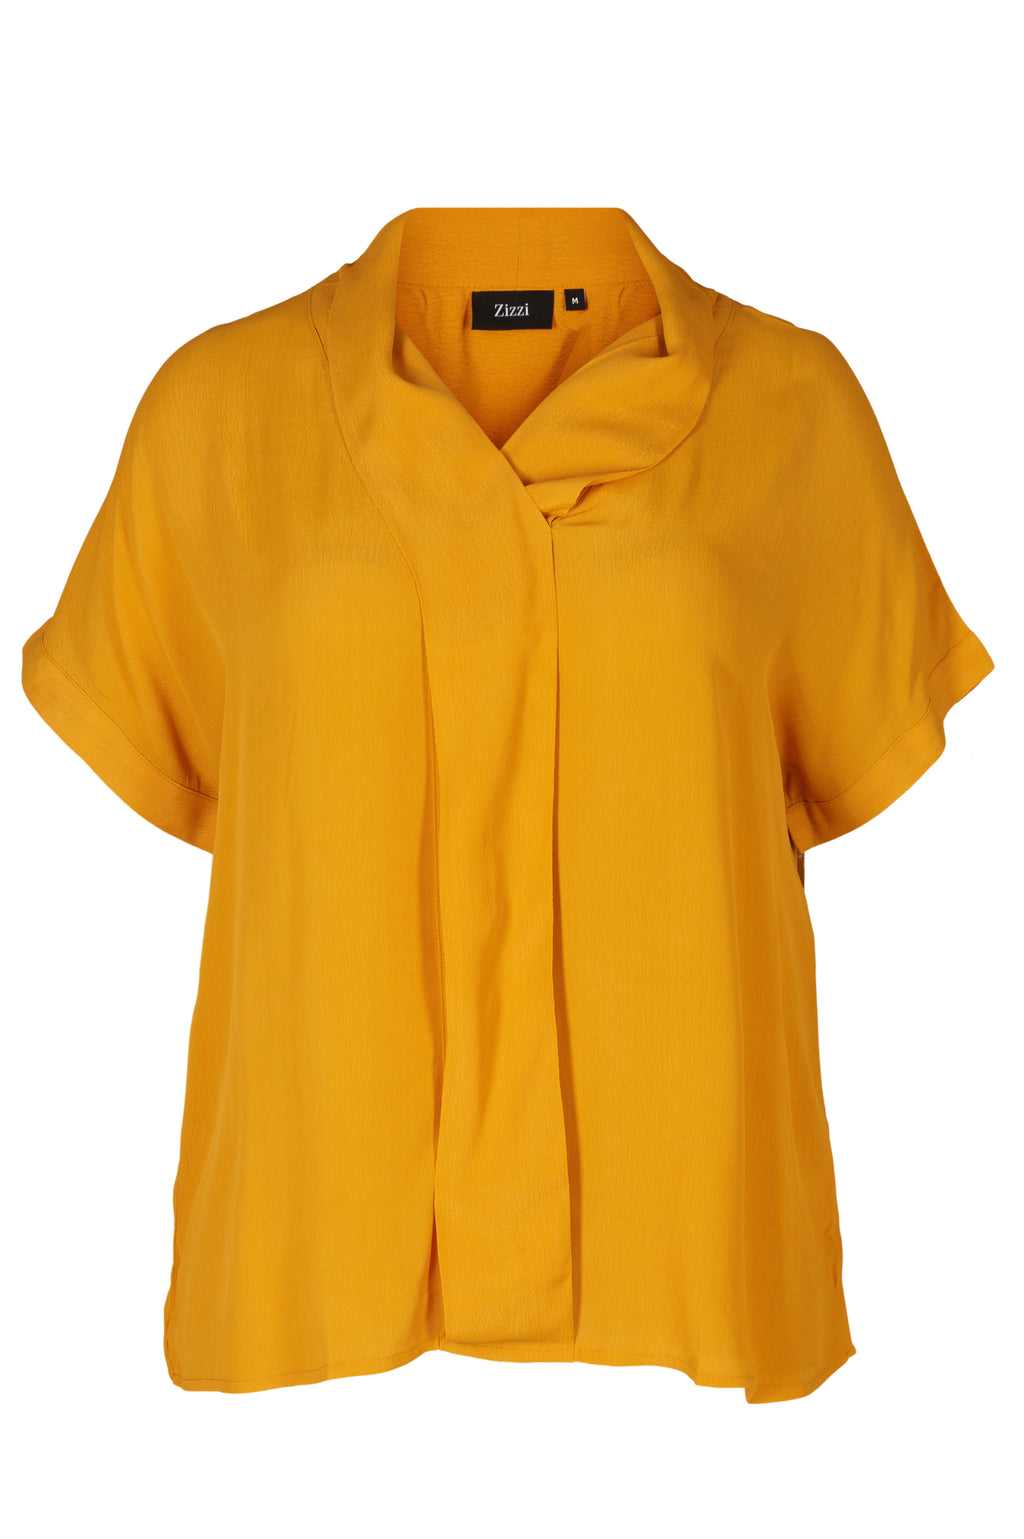 Blouse fluide jaune moutarde